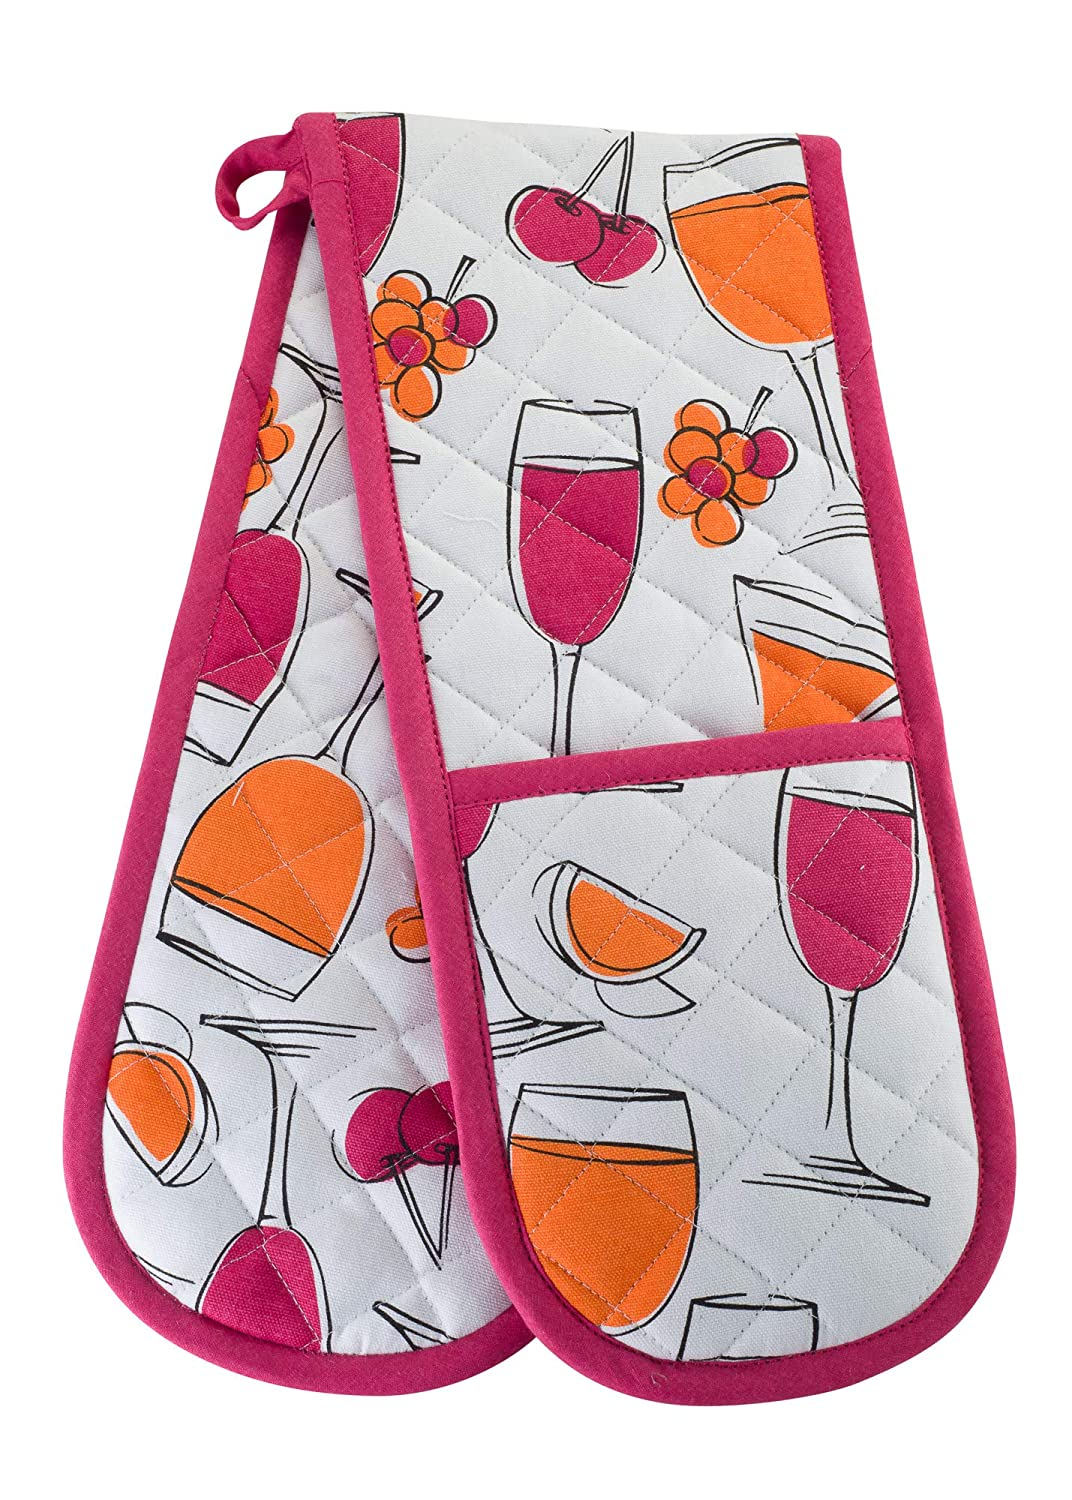 KreativeKitchenry Smart Home, Fun Wine Champagne, 1 Piece, Long Double Oven Mitts Gloves, Heat Resistant, 100% Cotton, Extra Thick, Quilted